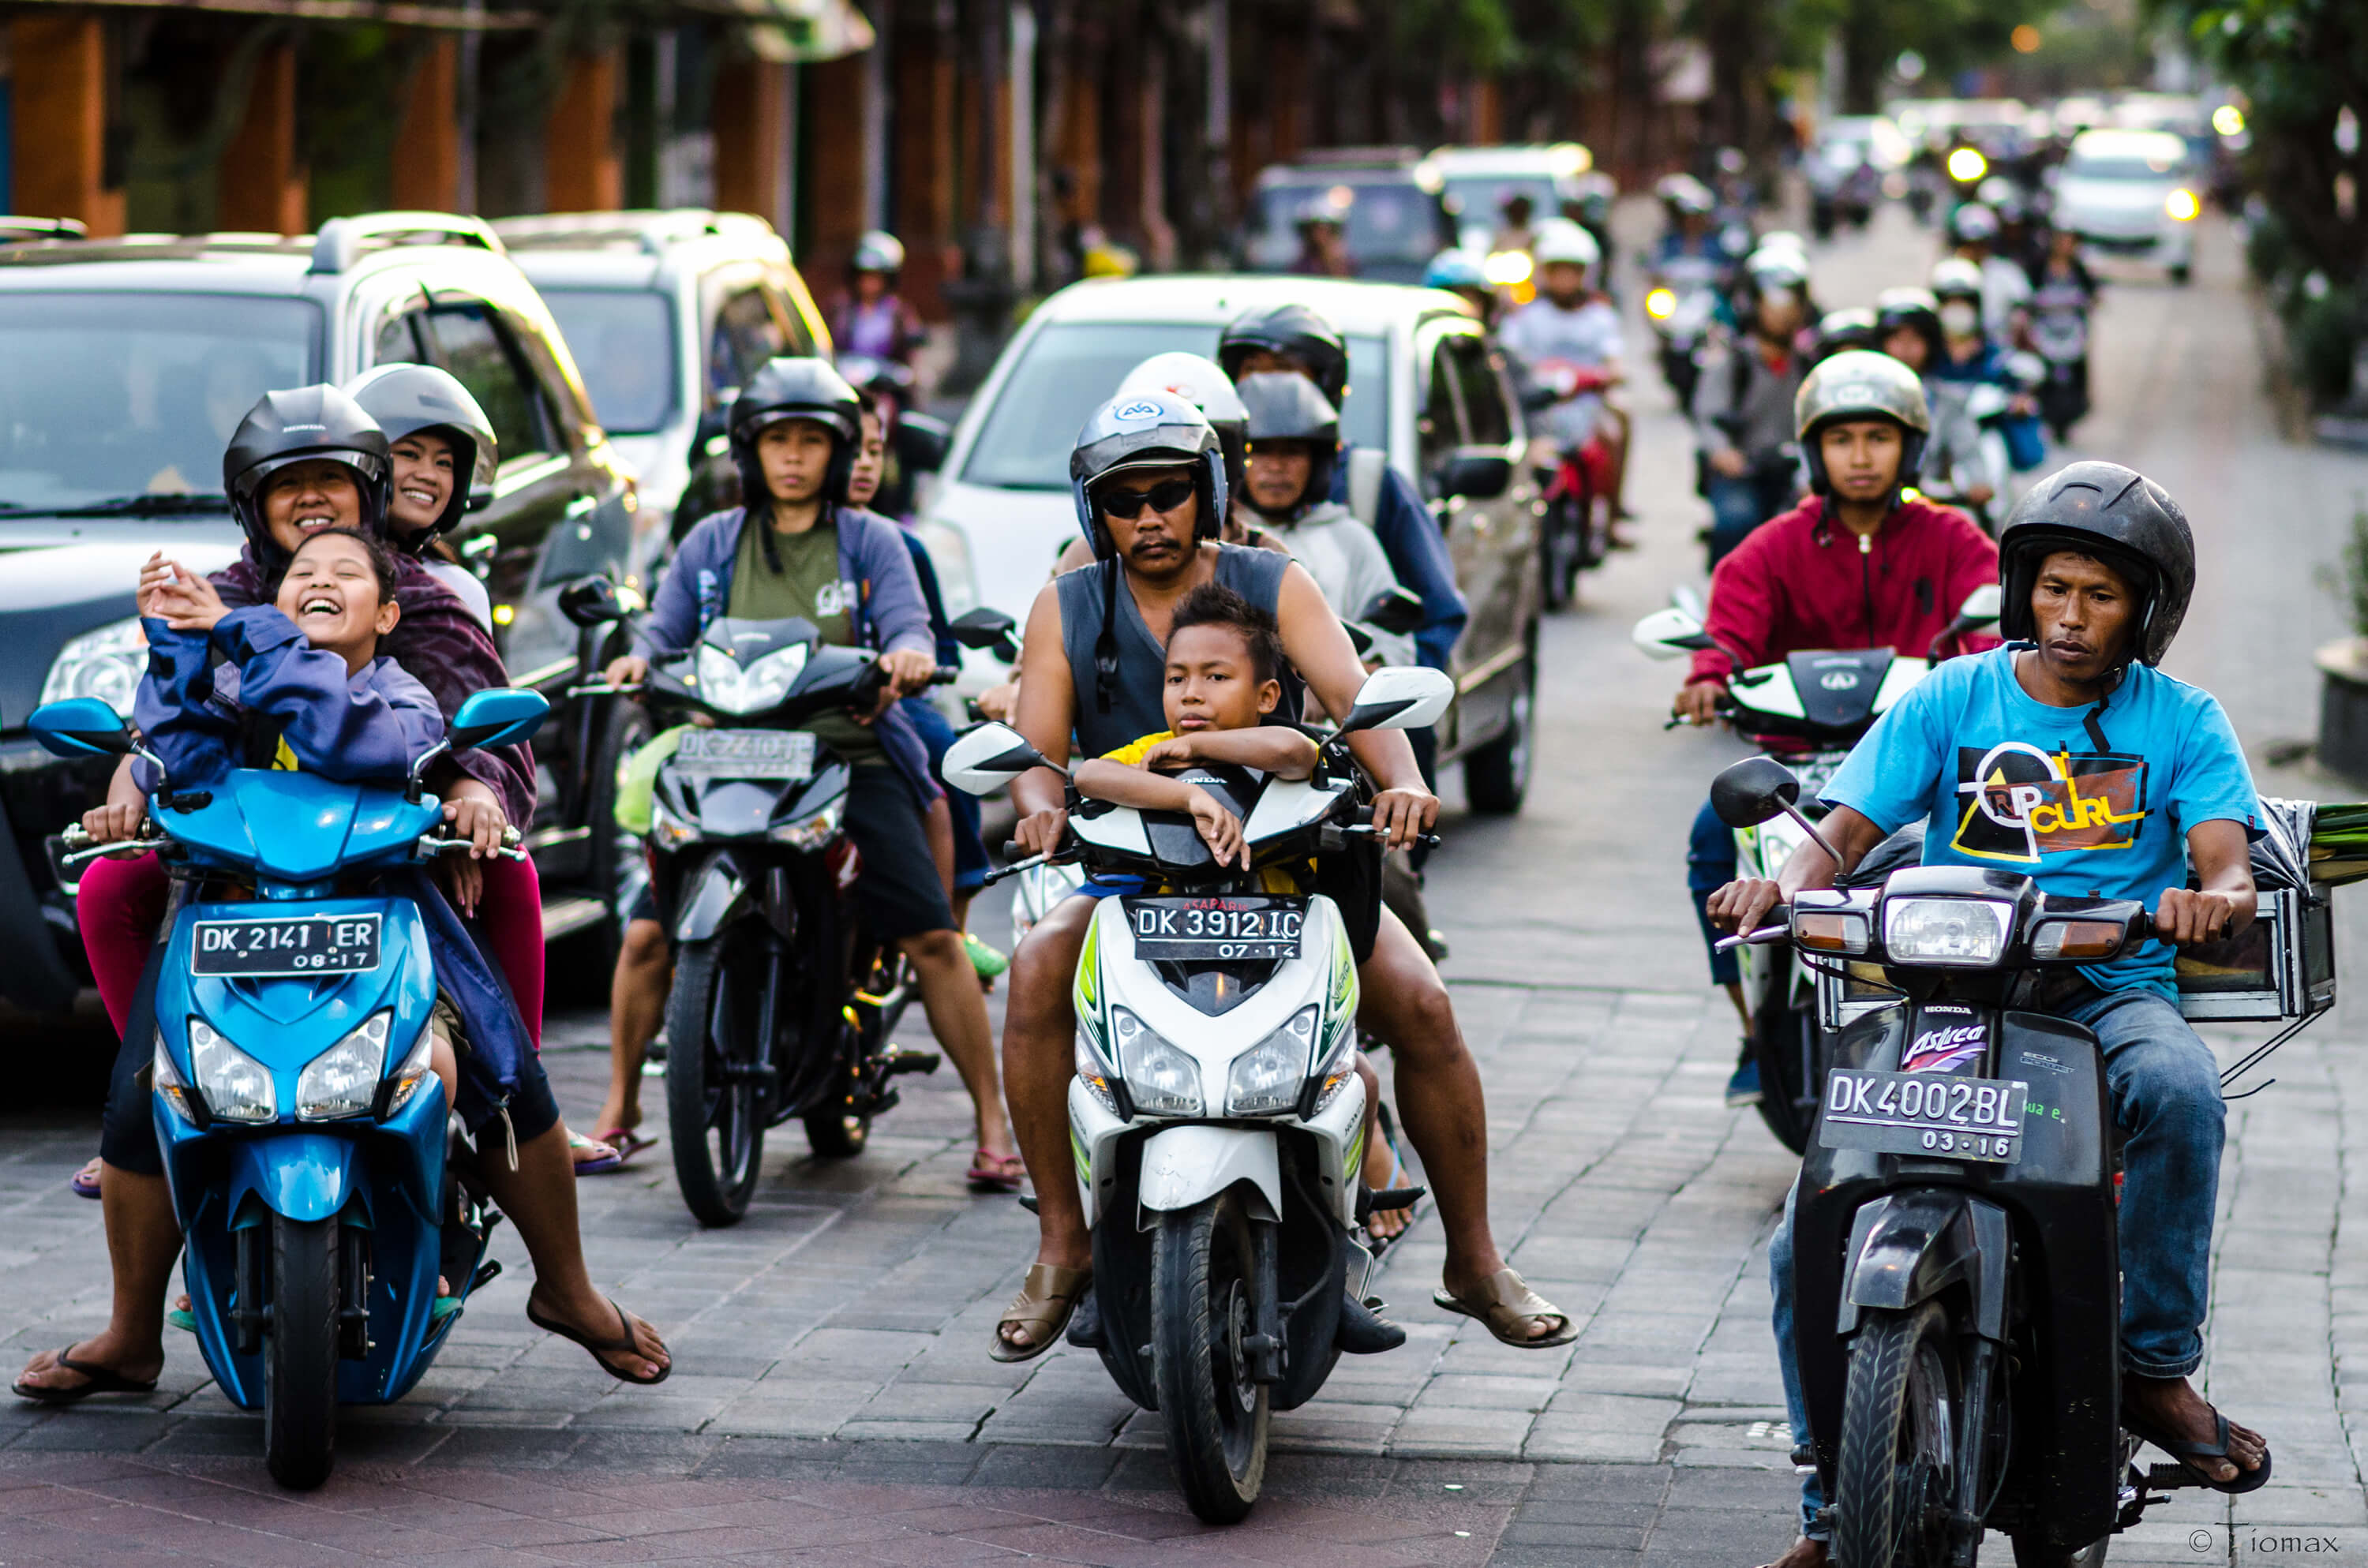 Motor bikes in congested traffic, with small children on bikes with no helmet, Indonesia